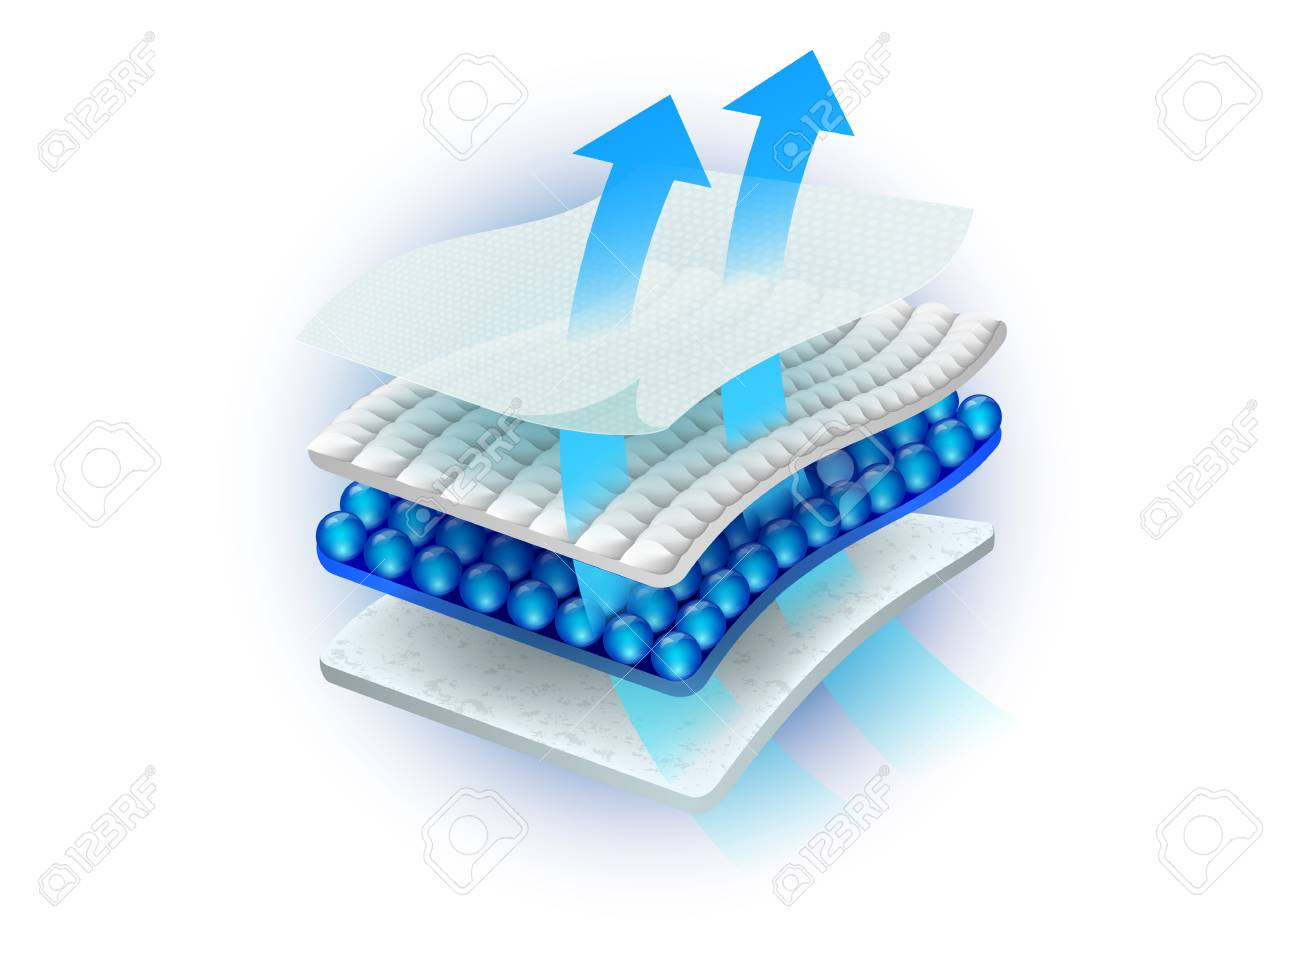 Multi-layer absorbent sheet Consists of many materials that can be ventilated. Vector realistic file. - 124955137